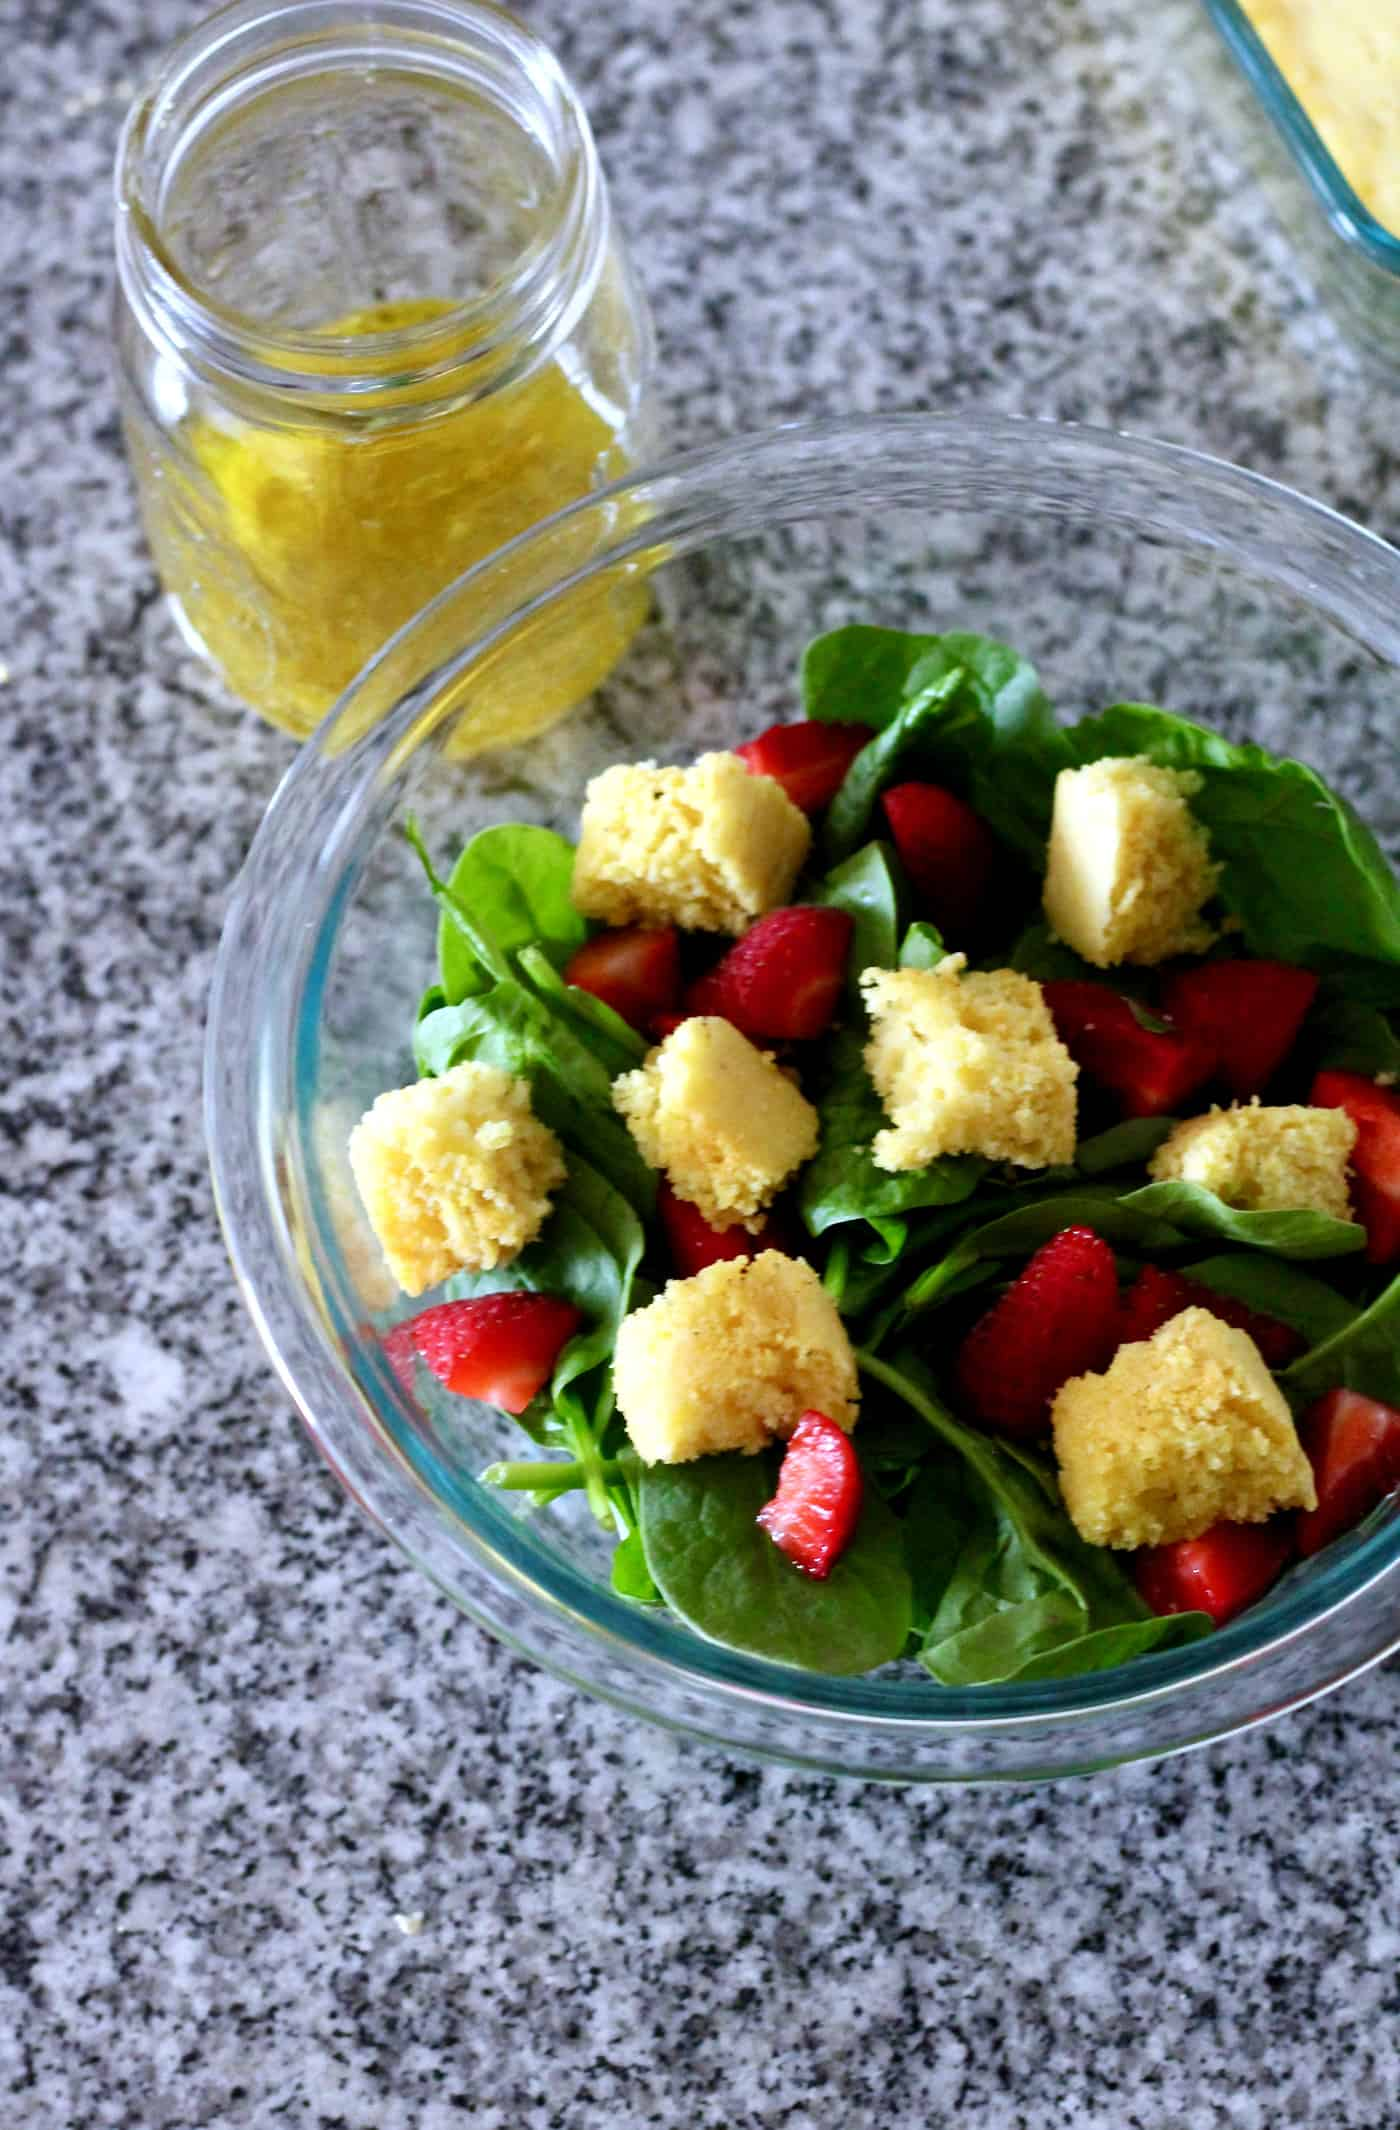 Simple Strawberry Spinach Salad With Cornbread Croutons The Healthy Toast